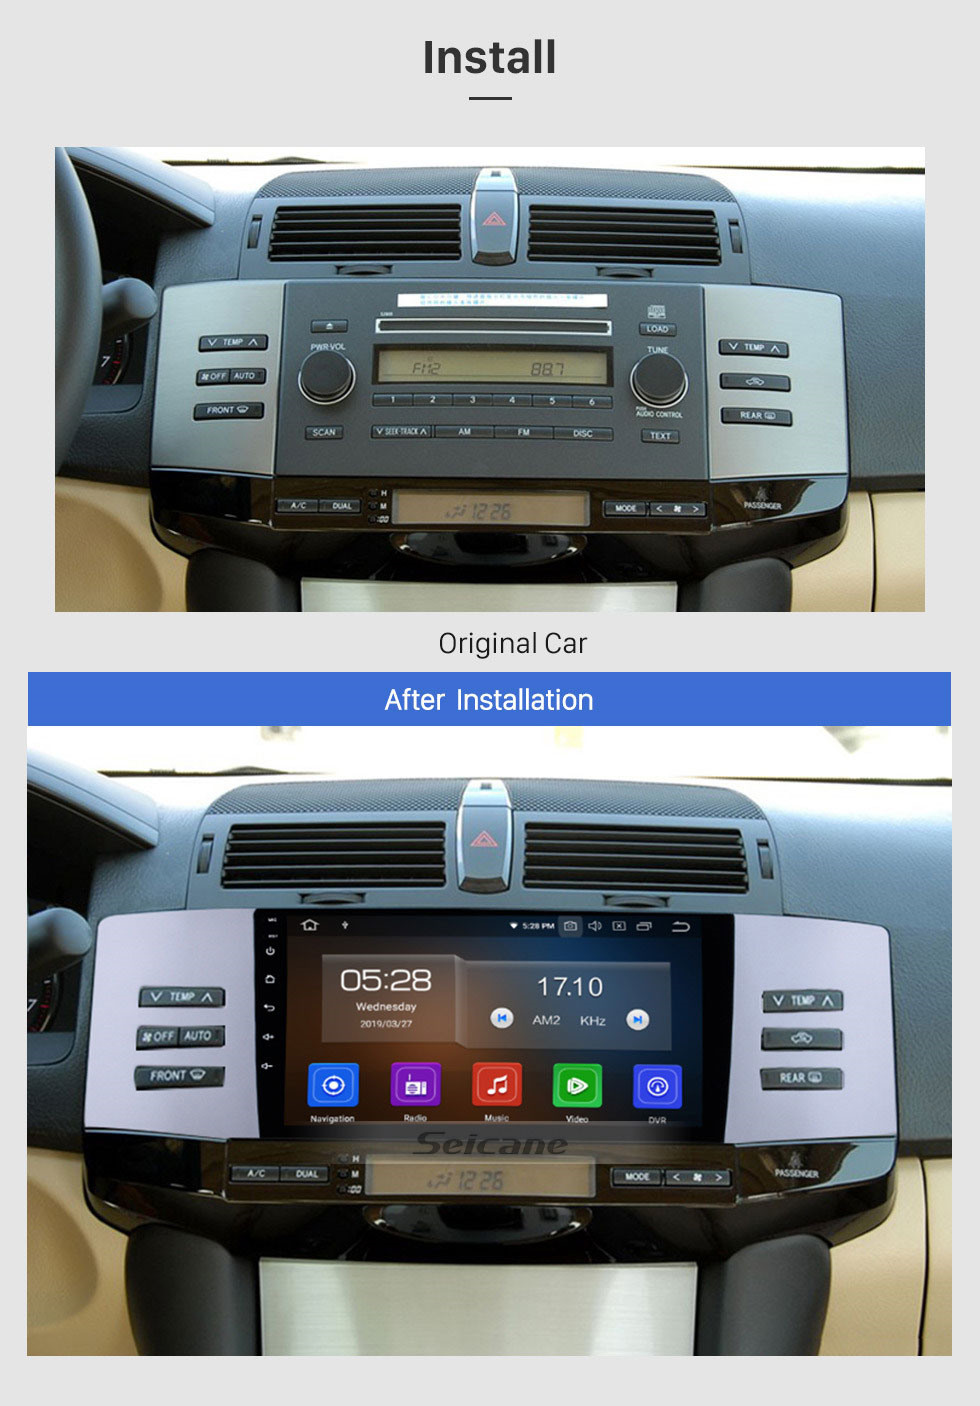 Seicane 9 inch Android 10.0 HD Touchscreen Radio GPS Navigation system For 2005 2006 2007 2008 2009 Toyota Old Reiz Bluetooth Support OBD2 USB WIFI DVR Mirror Link Carplay